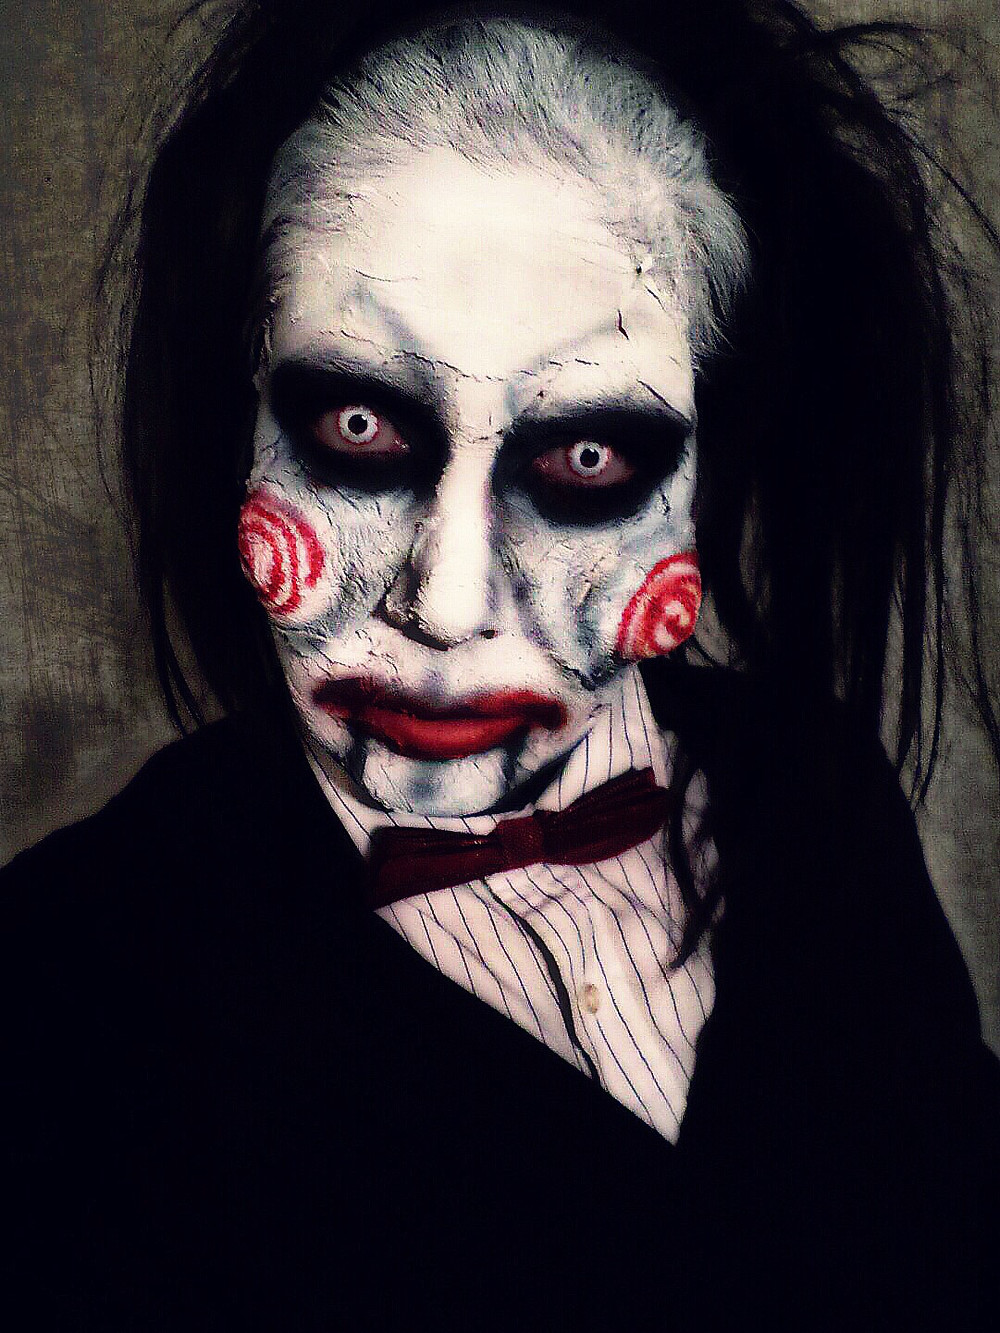 Jacquie Lantern Billy the Puppet Makeup SAW / JIGSAW